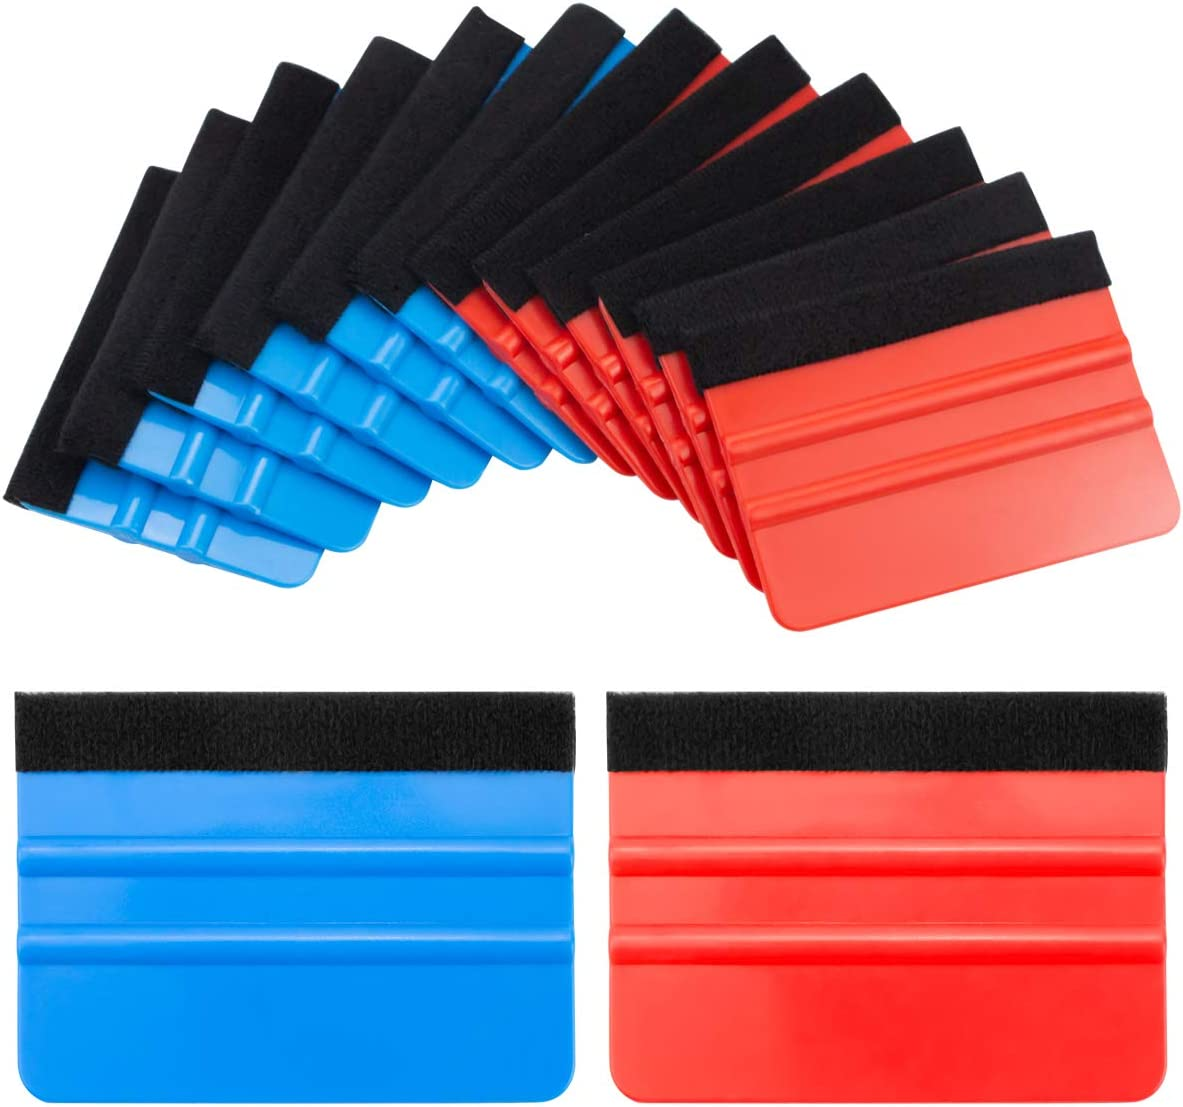 Hslife 12 Pcs Felt Max 41% OFF Edge Kits Squeegee Portland Mall Ap Tool Wrapping